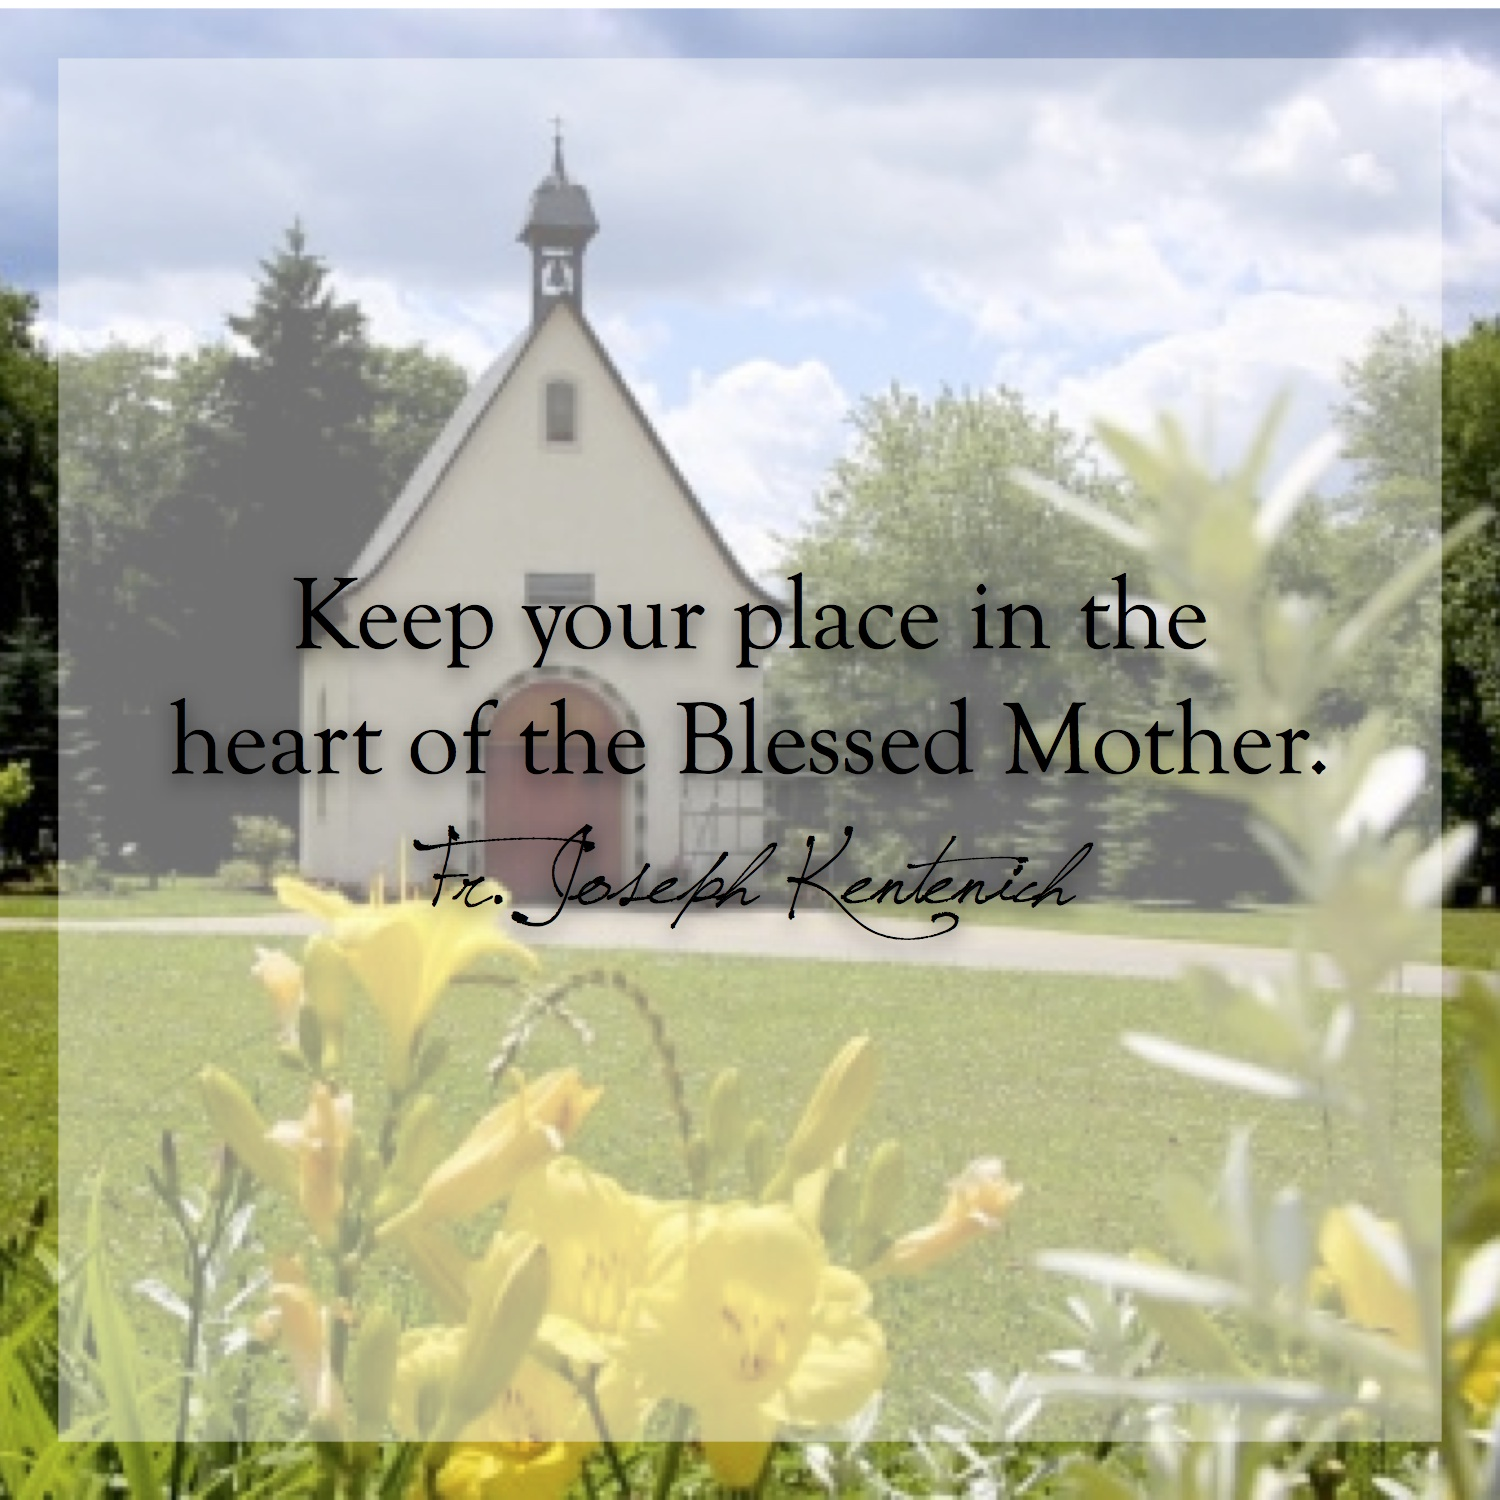 keep-your-place-in-the-heart-of-the-blessed-mother